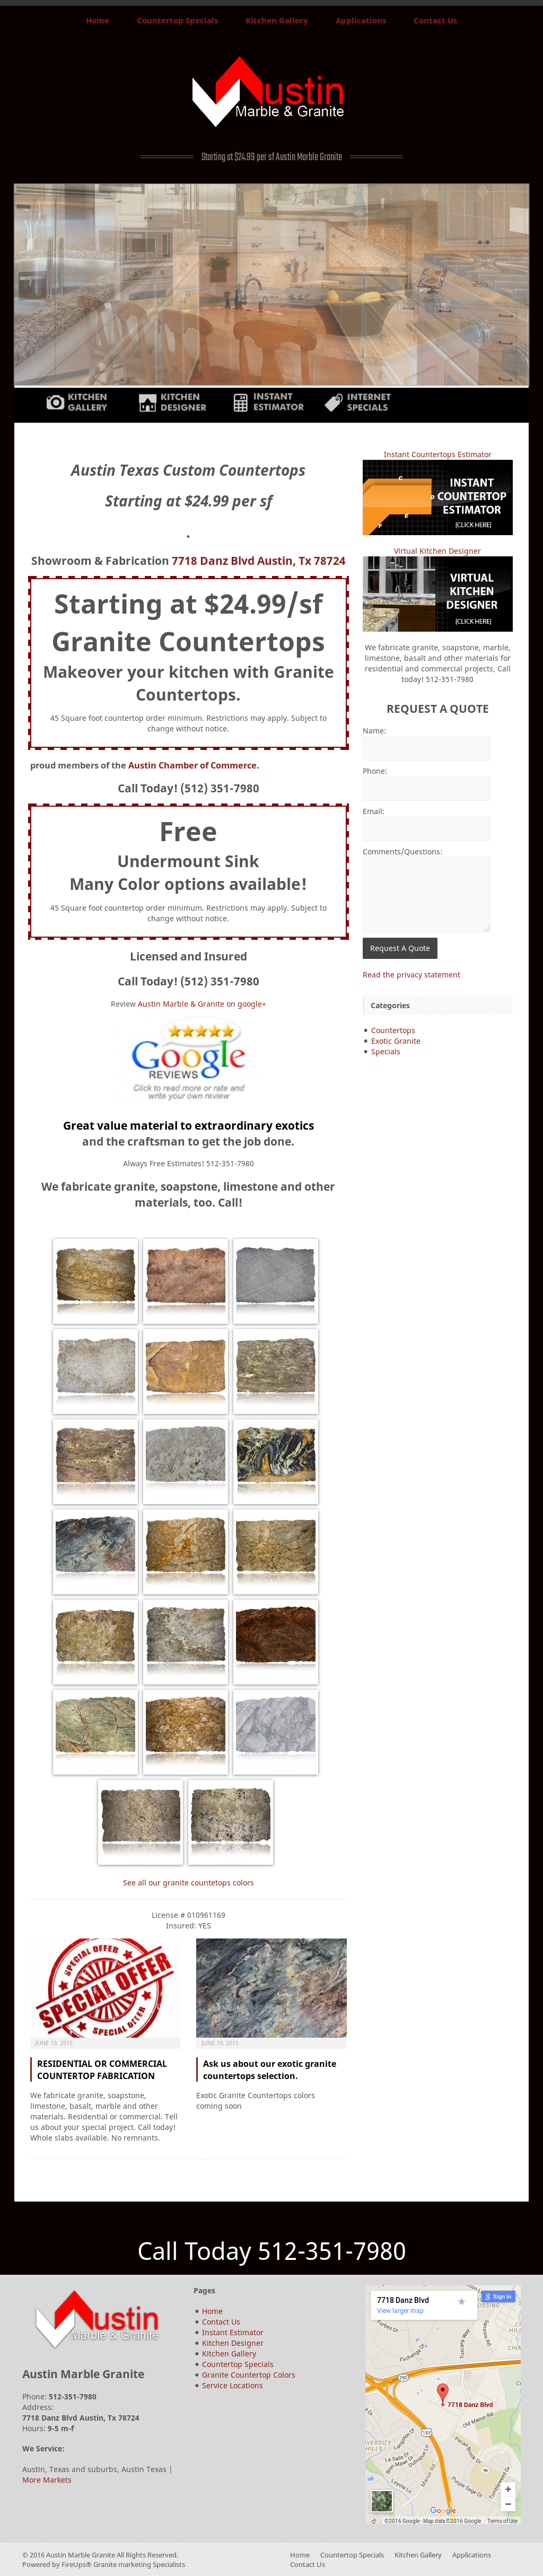 Austin Marble & Granite Competitors, Revenue and Employees - Owler